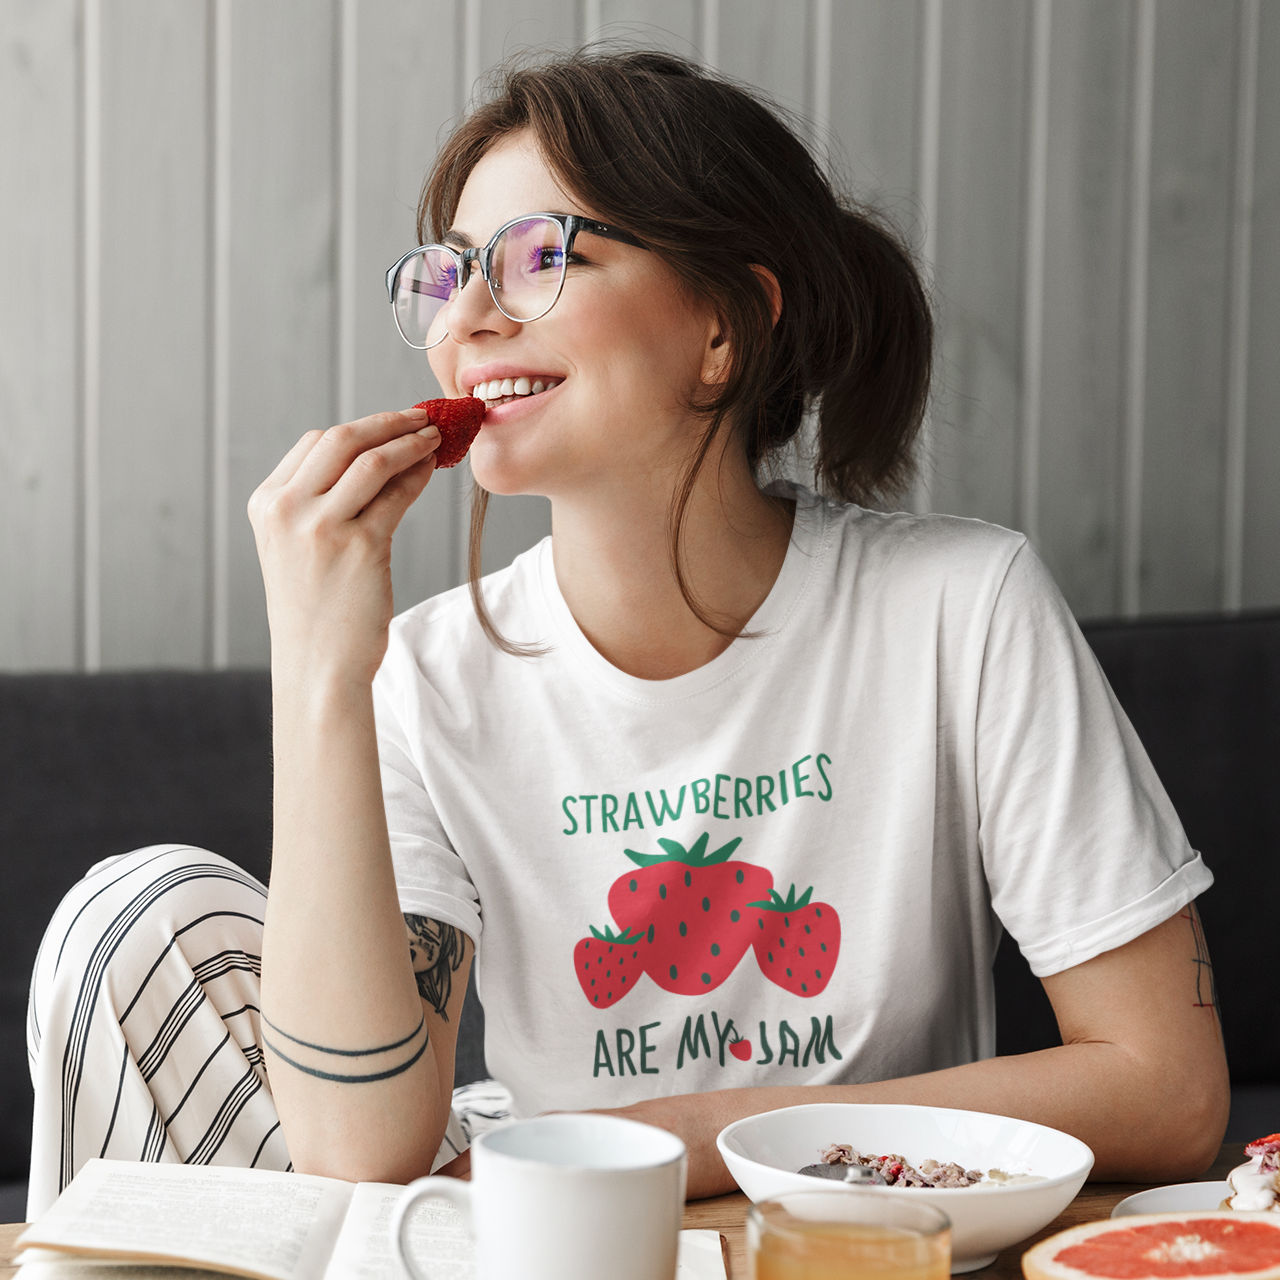 'Strawberries are my jam' adult shirt